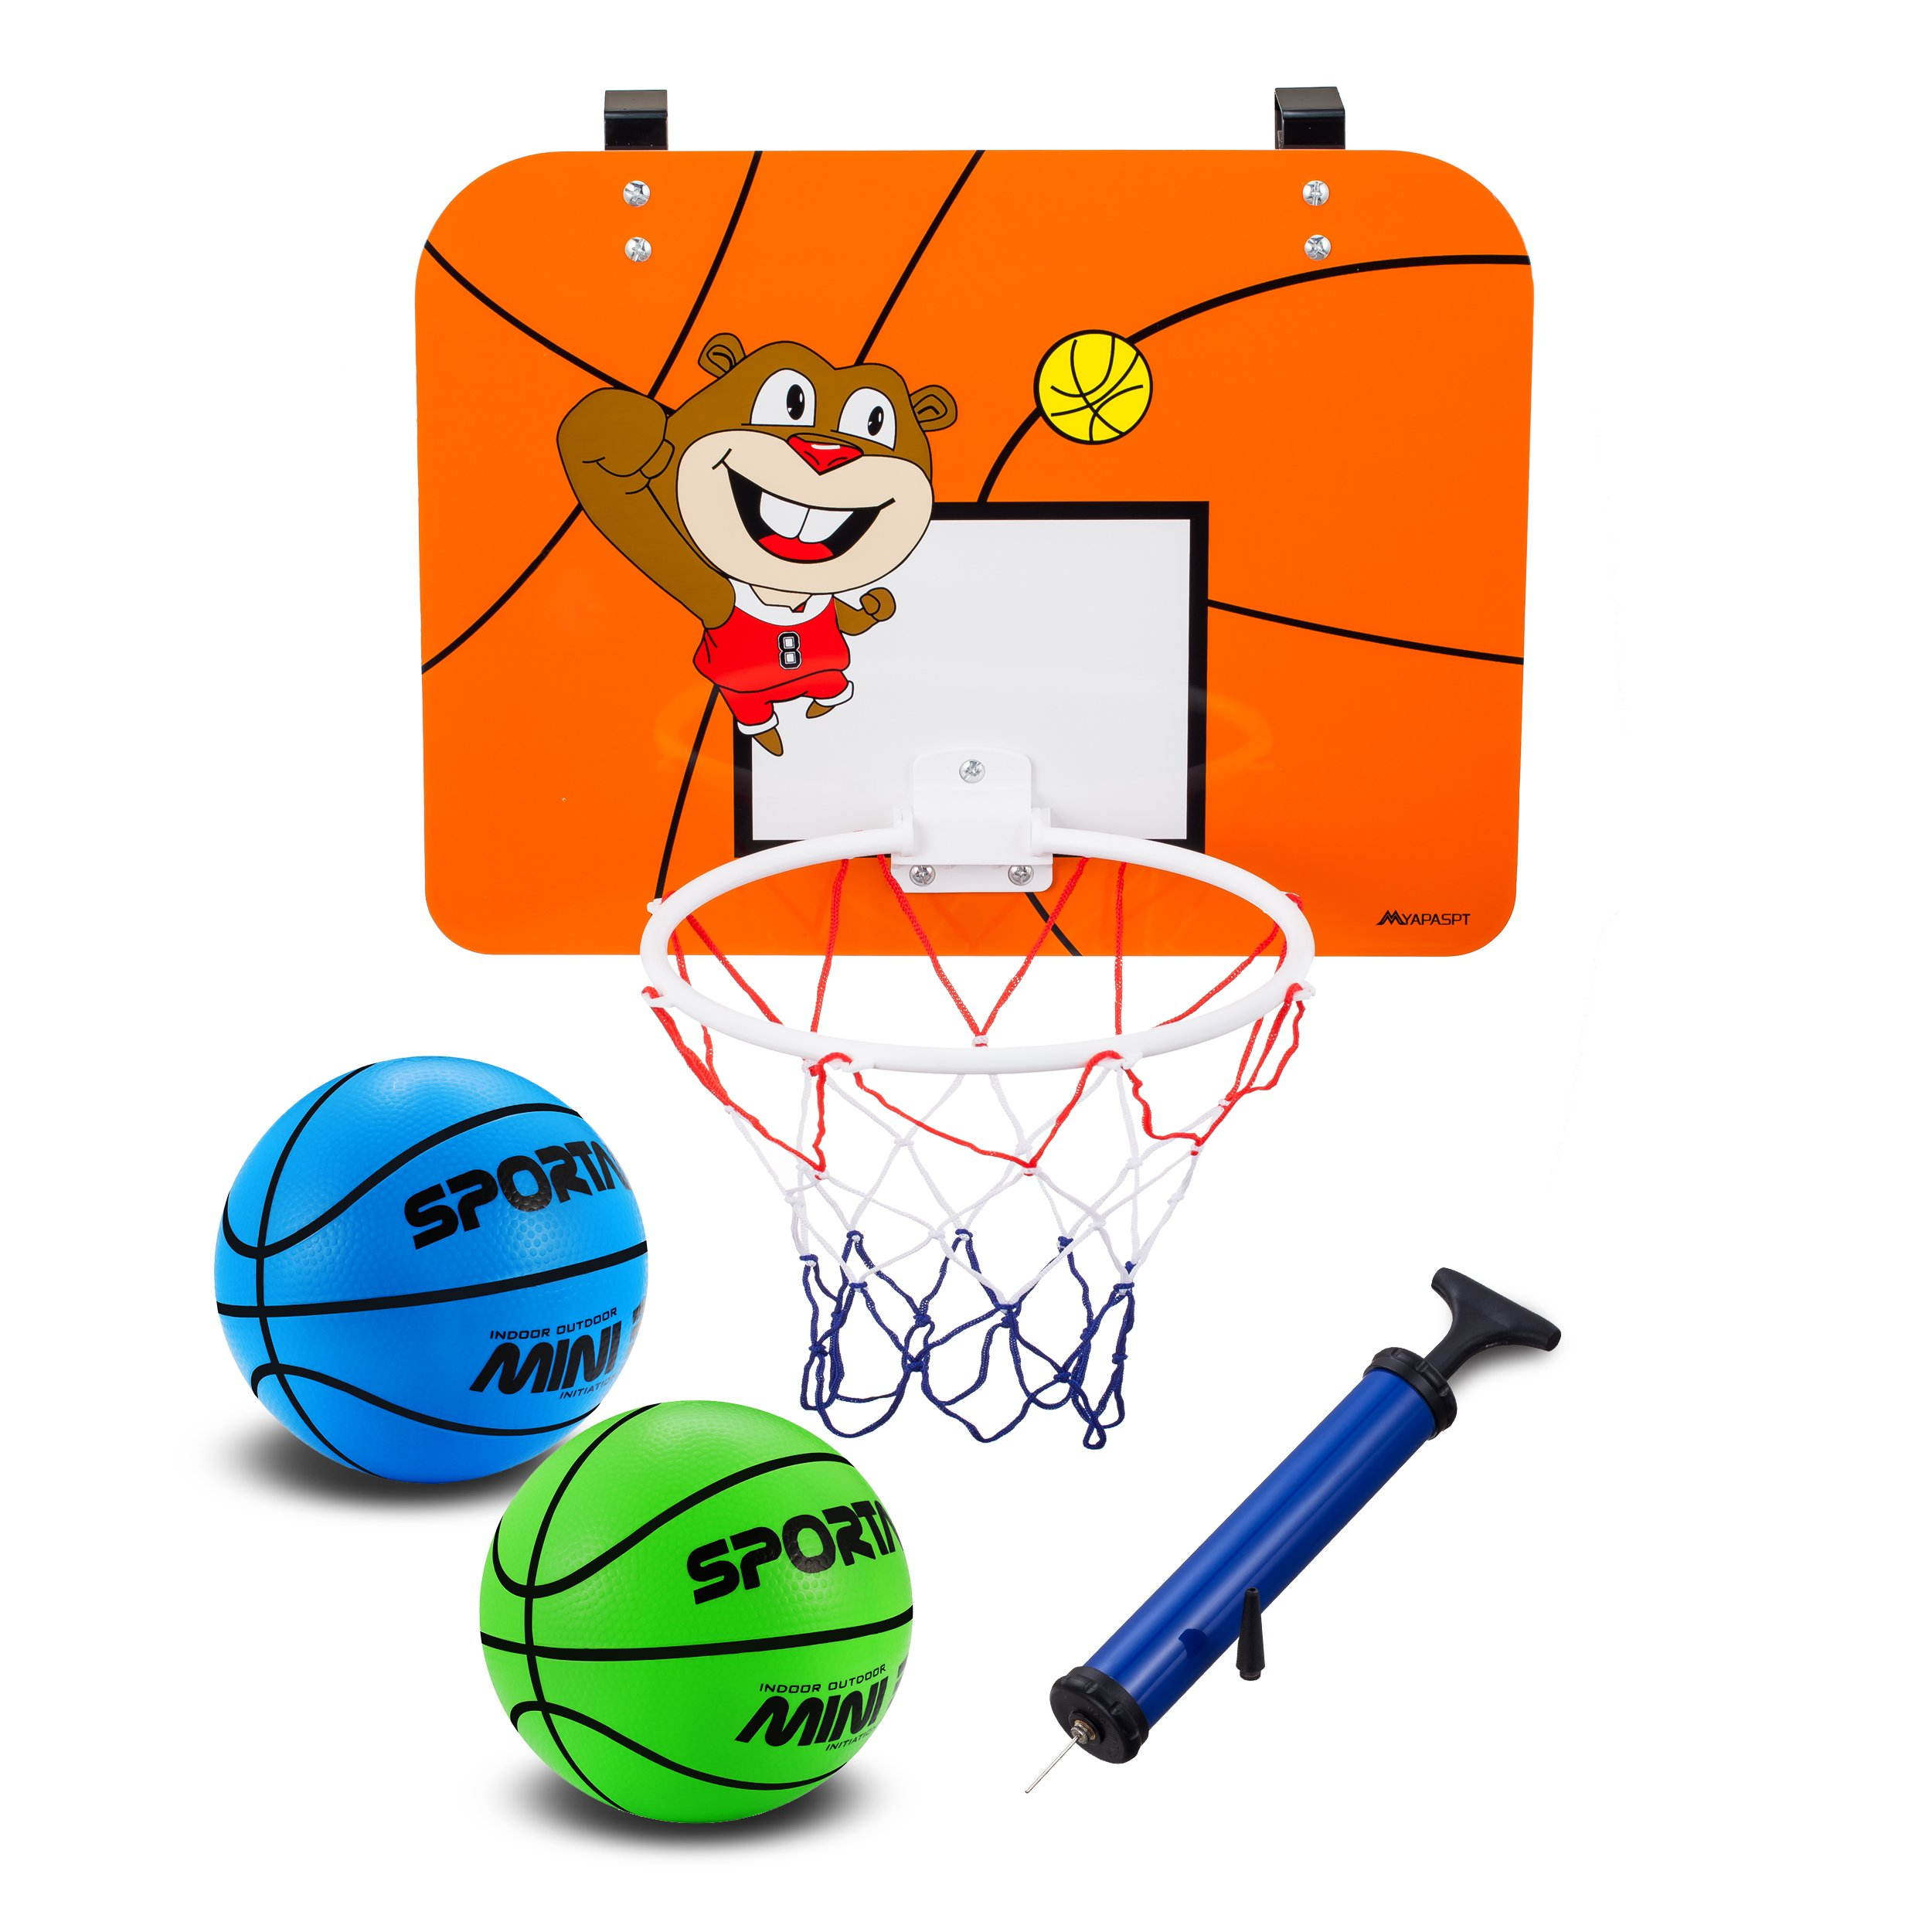 Mini Basketball Hoop Set With 16 x 12 Inch Shatter Resistant Backboard - Cute Bright Colors Kids Ball - Includes 2Pcs 6.5 Inch Basketballs & Pump - Fun Play Basketball System For Children Or Adult